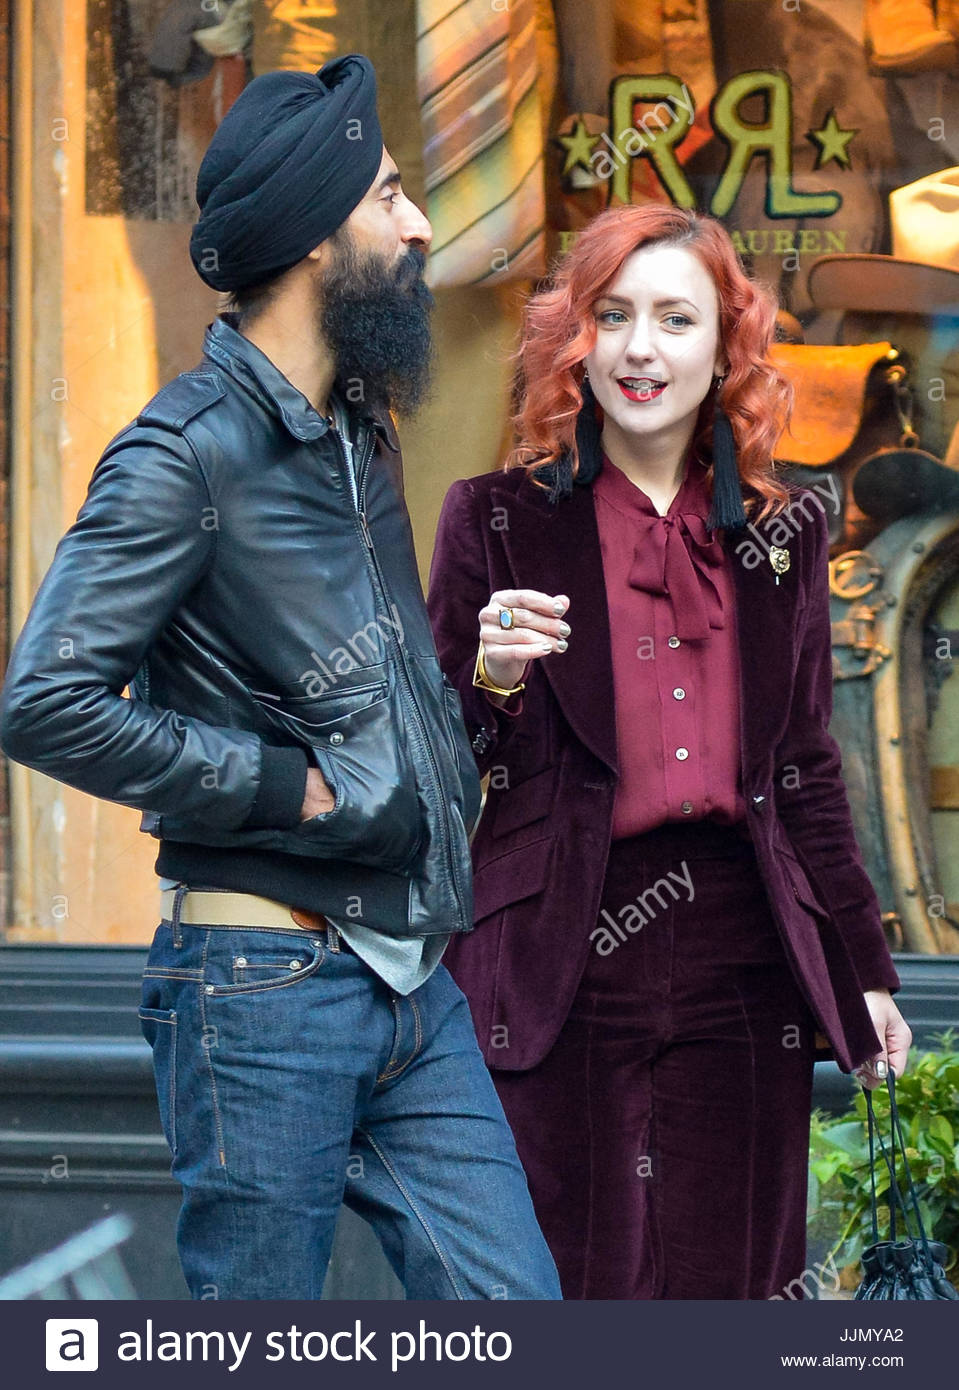 Waris ahluwalia actor and jewelry designer waris ahluwalia whos actor and jewelry designer waris ahluwalia whos currently the sikh model in a gap ad campaign that was defaced in nyc with racist graffiti is spotted out publicscrutiny Gallery